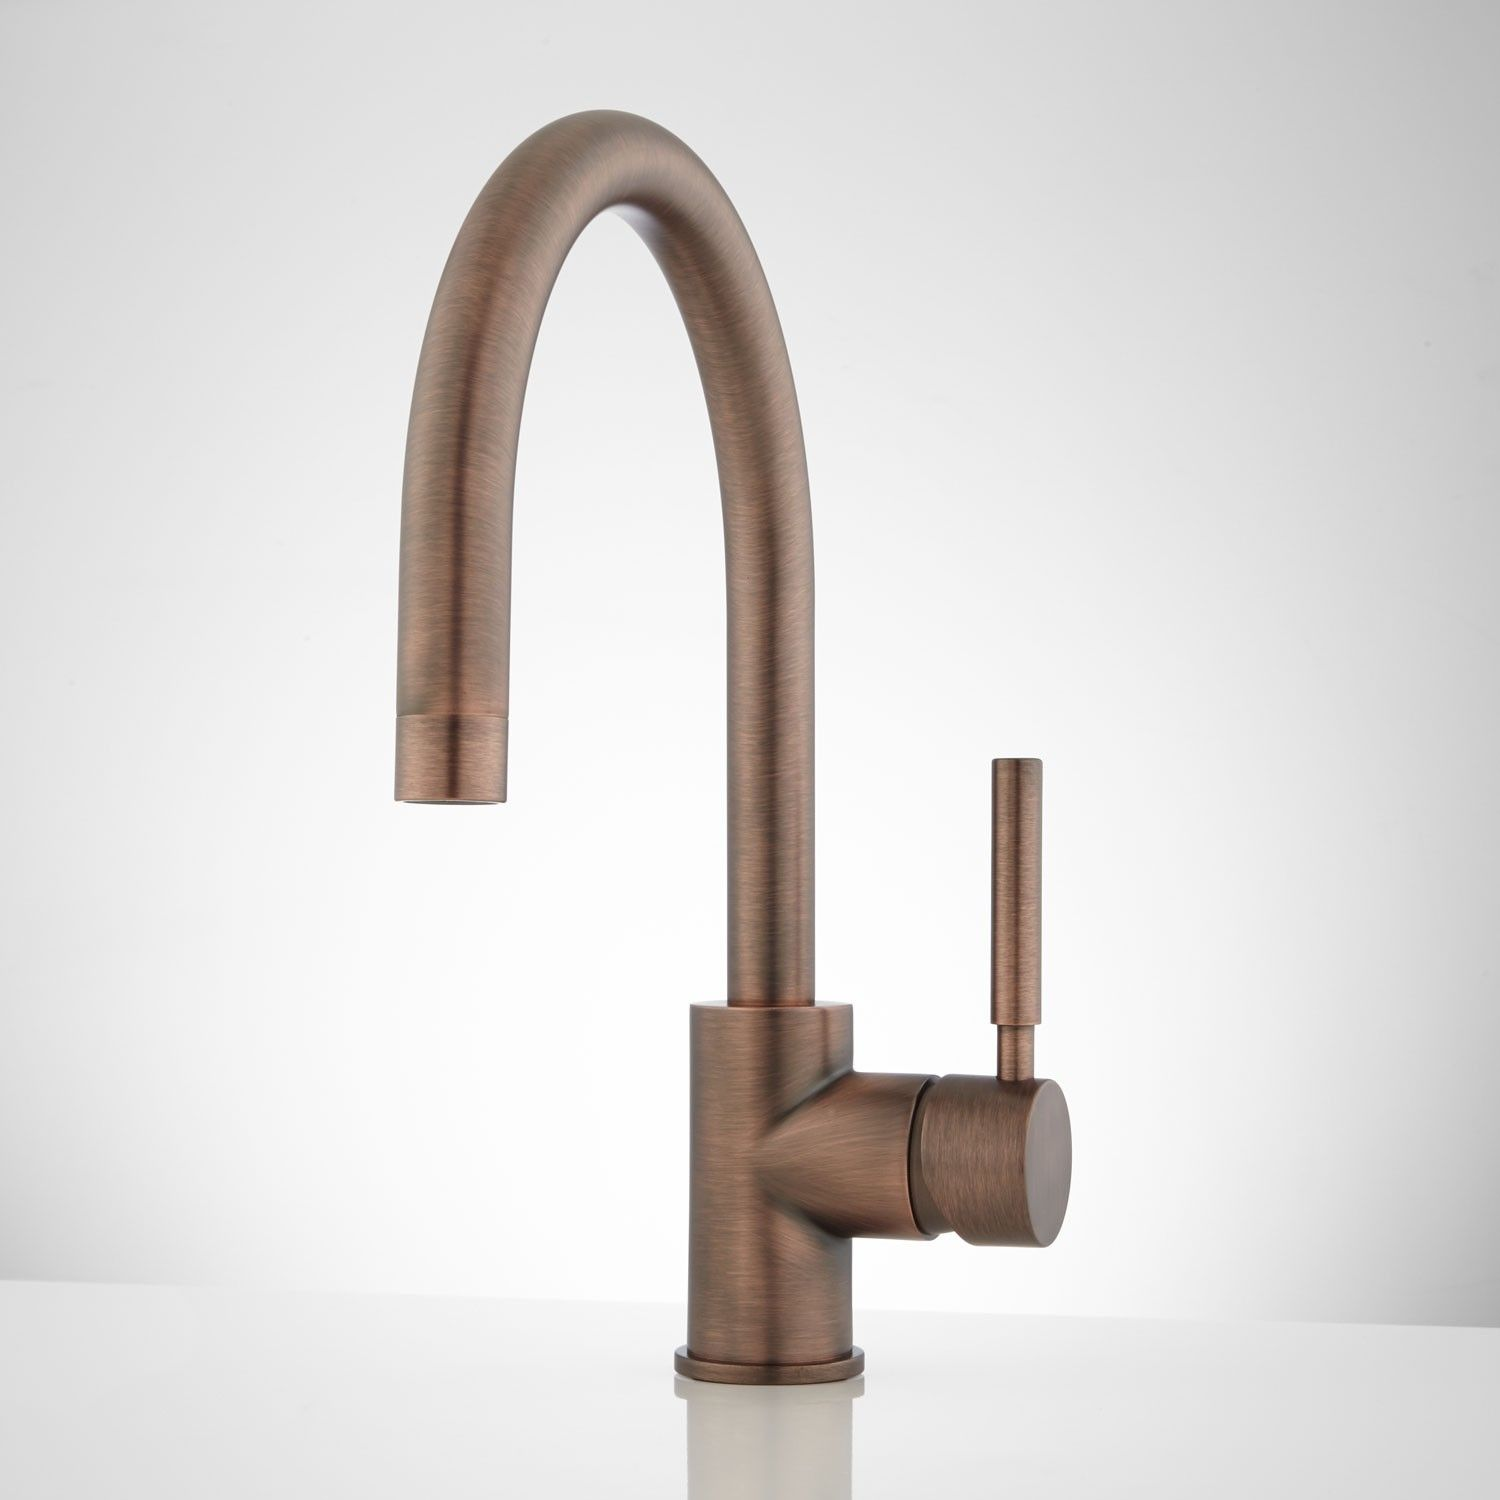 Casimir Single Hole Bathroom Faucet With Pop Up Drain 180 No Brass Only Oil Rubbed Bron Bathroom Faucets Single Hole Bathroom Faucet Bathroom Sink Faucets